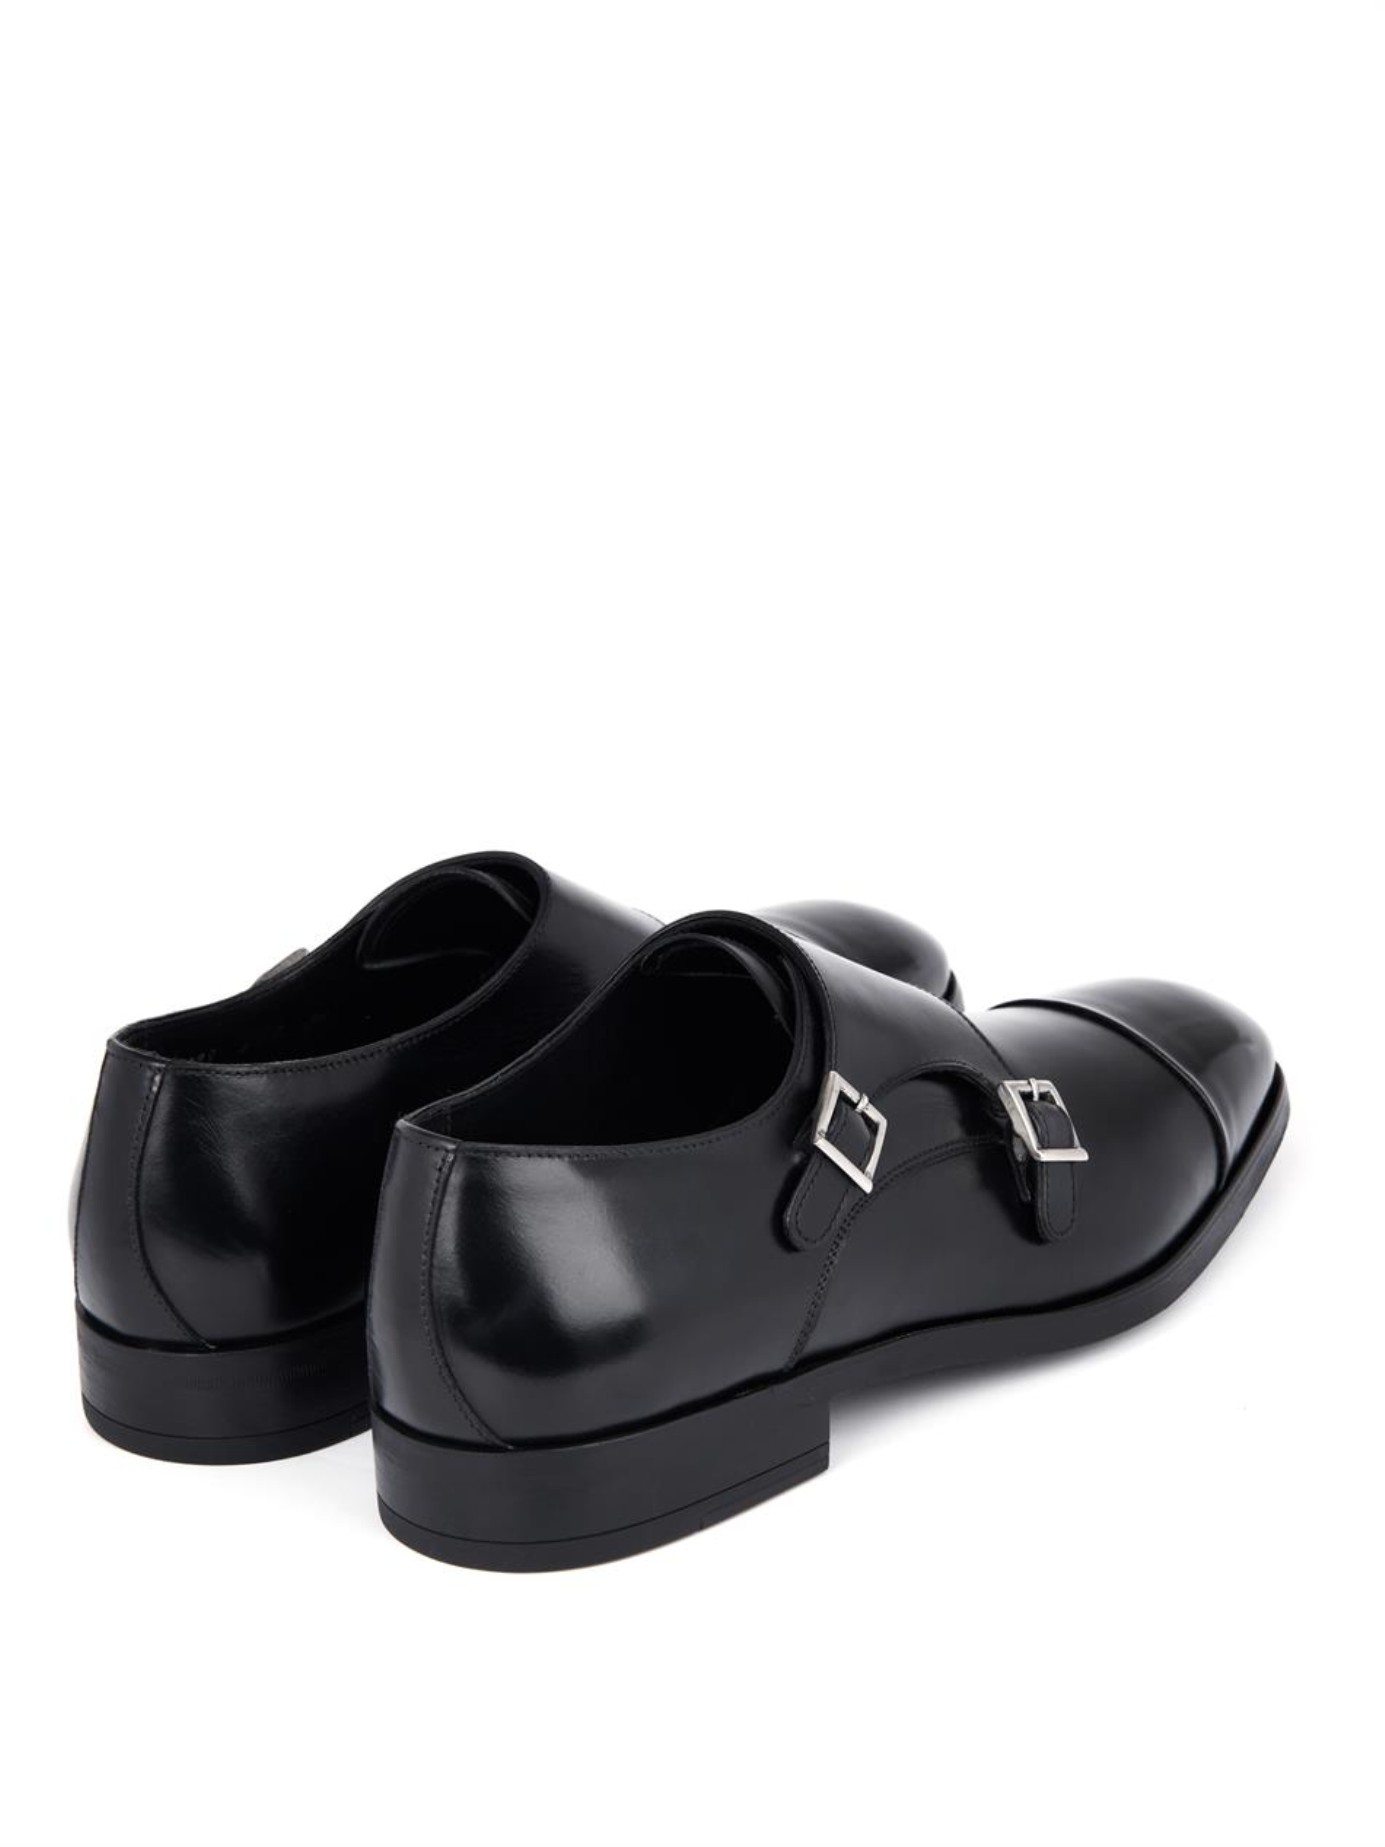 Campanile Leather Monk-Strap Shoes in Black for Men